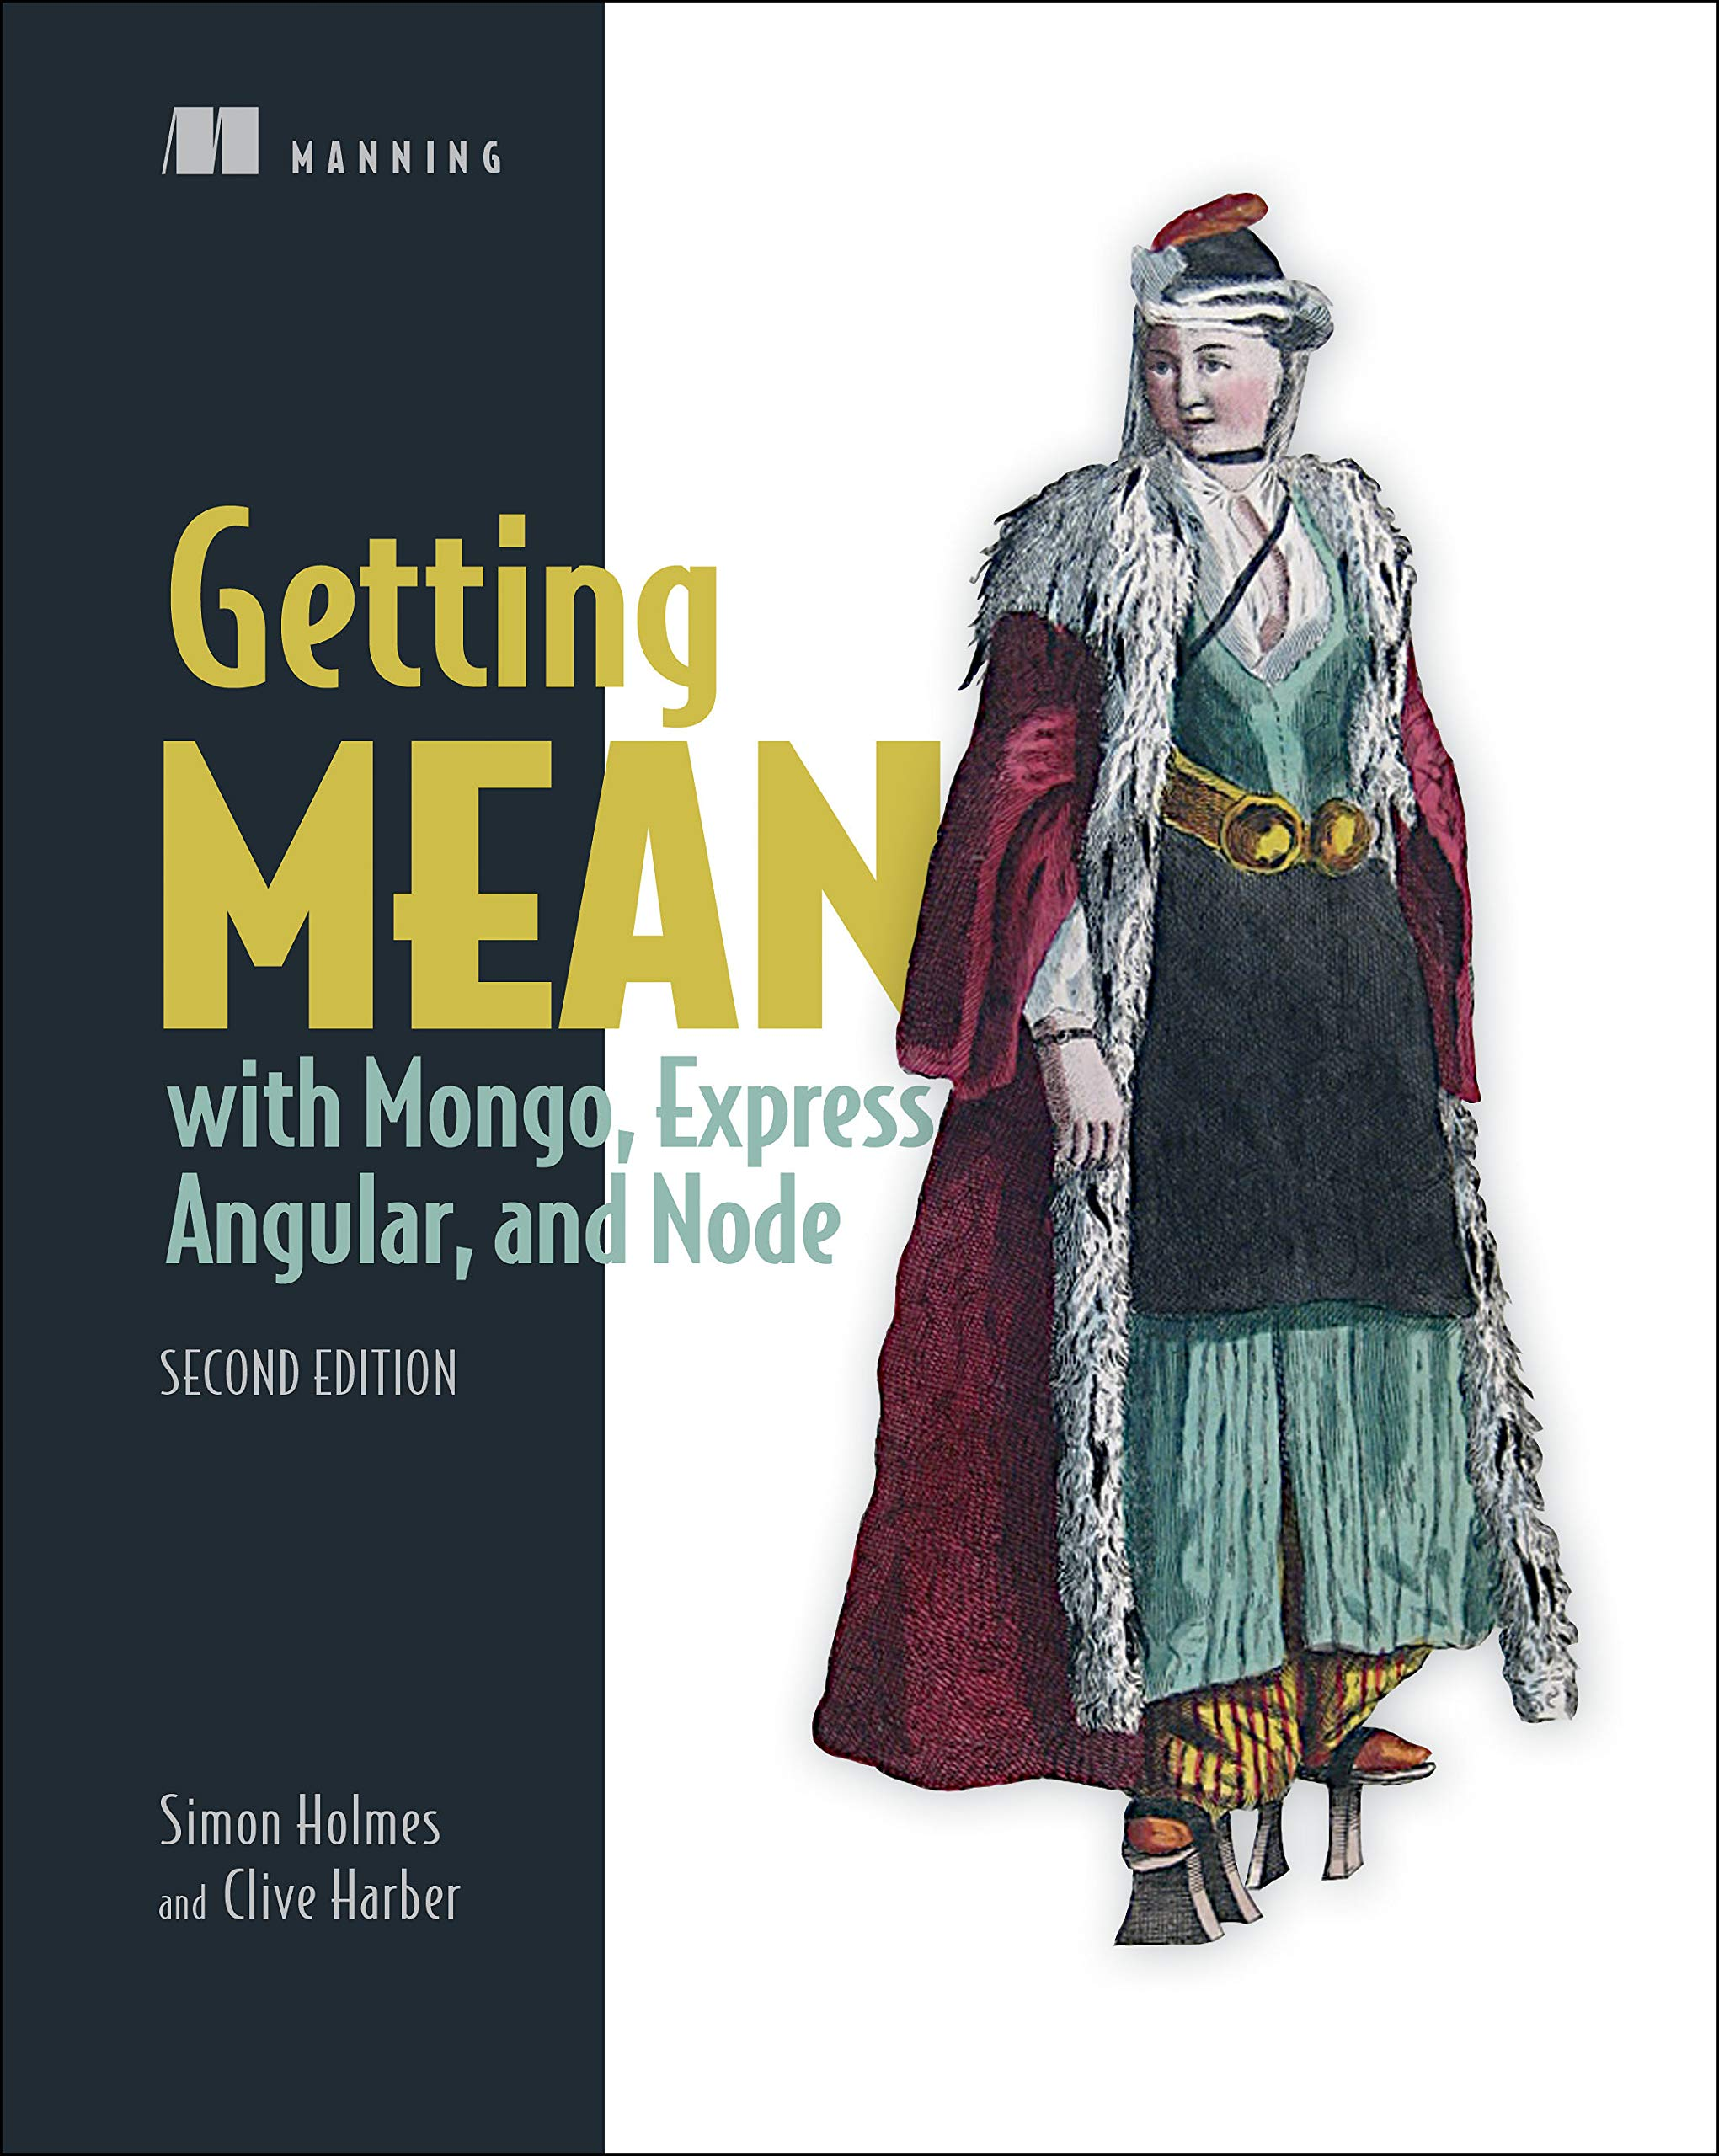 JS/Andular/Mongo IT book cover